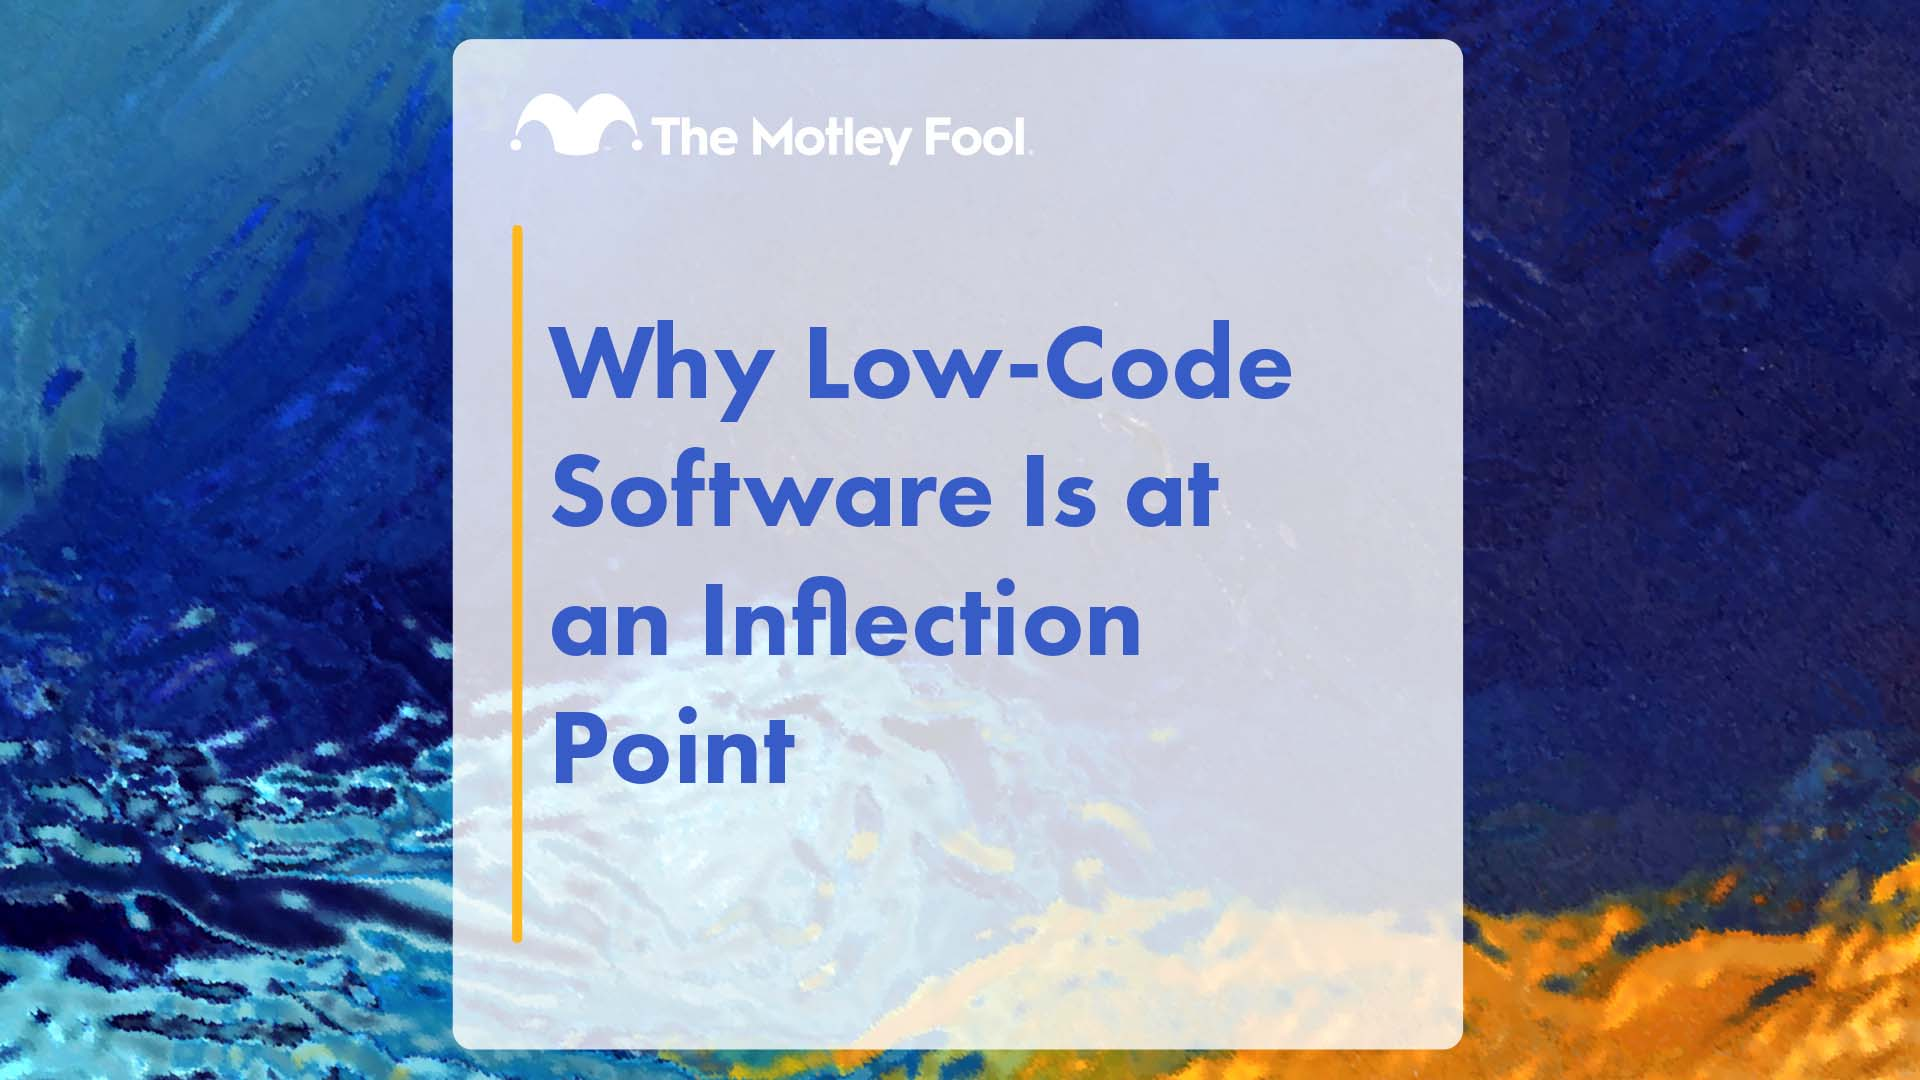 Why Low-Code Software Is at an Inflection Point